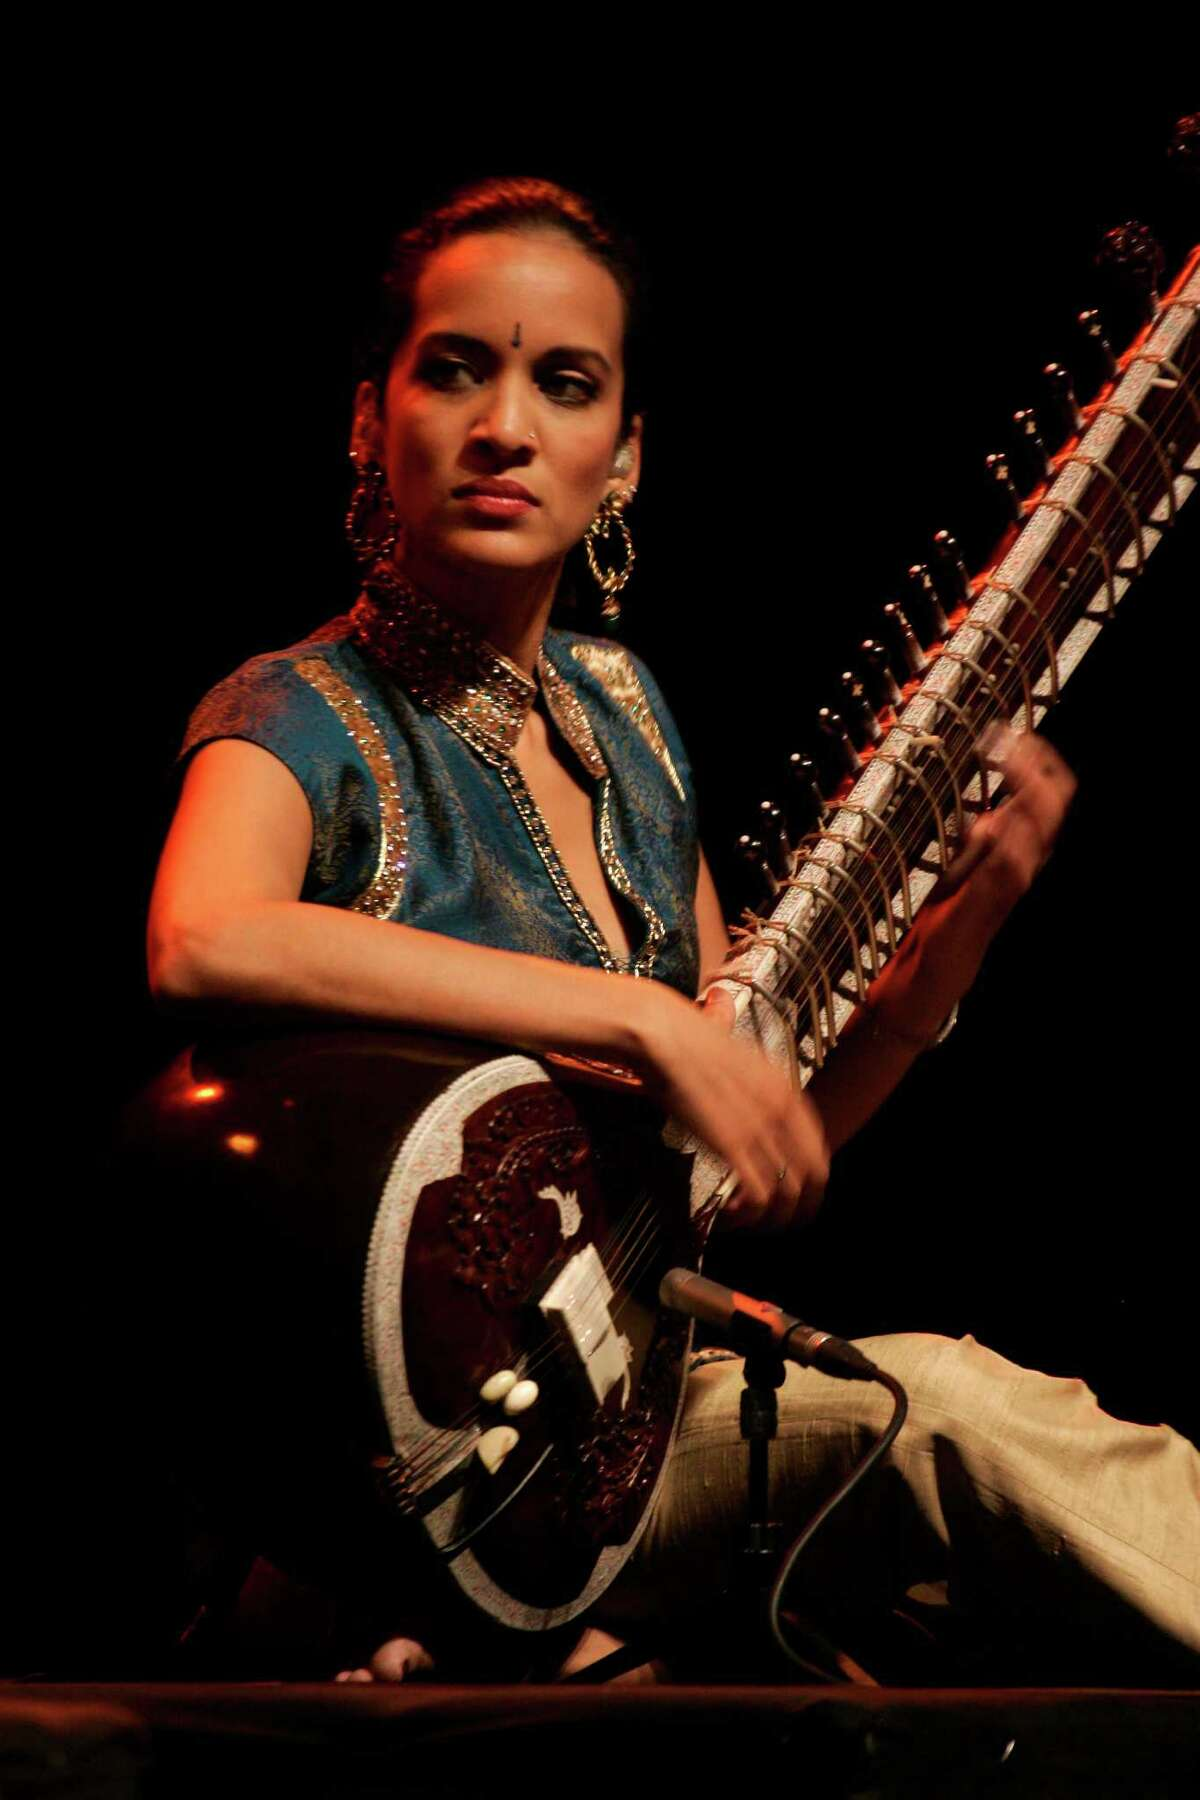 Musician Anoushka Shankar will perform in one of three tributes to her father, the legendary Ravi Shankar, during the Indo-American Association's 2014 season.